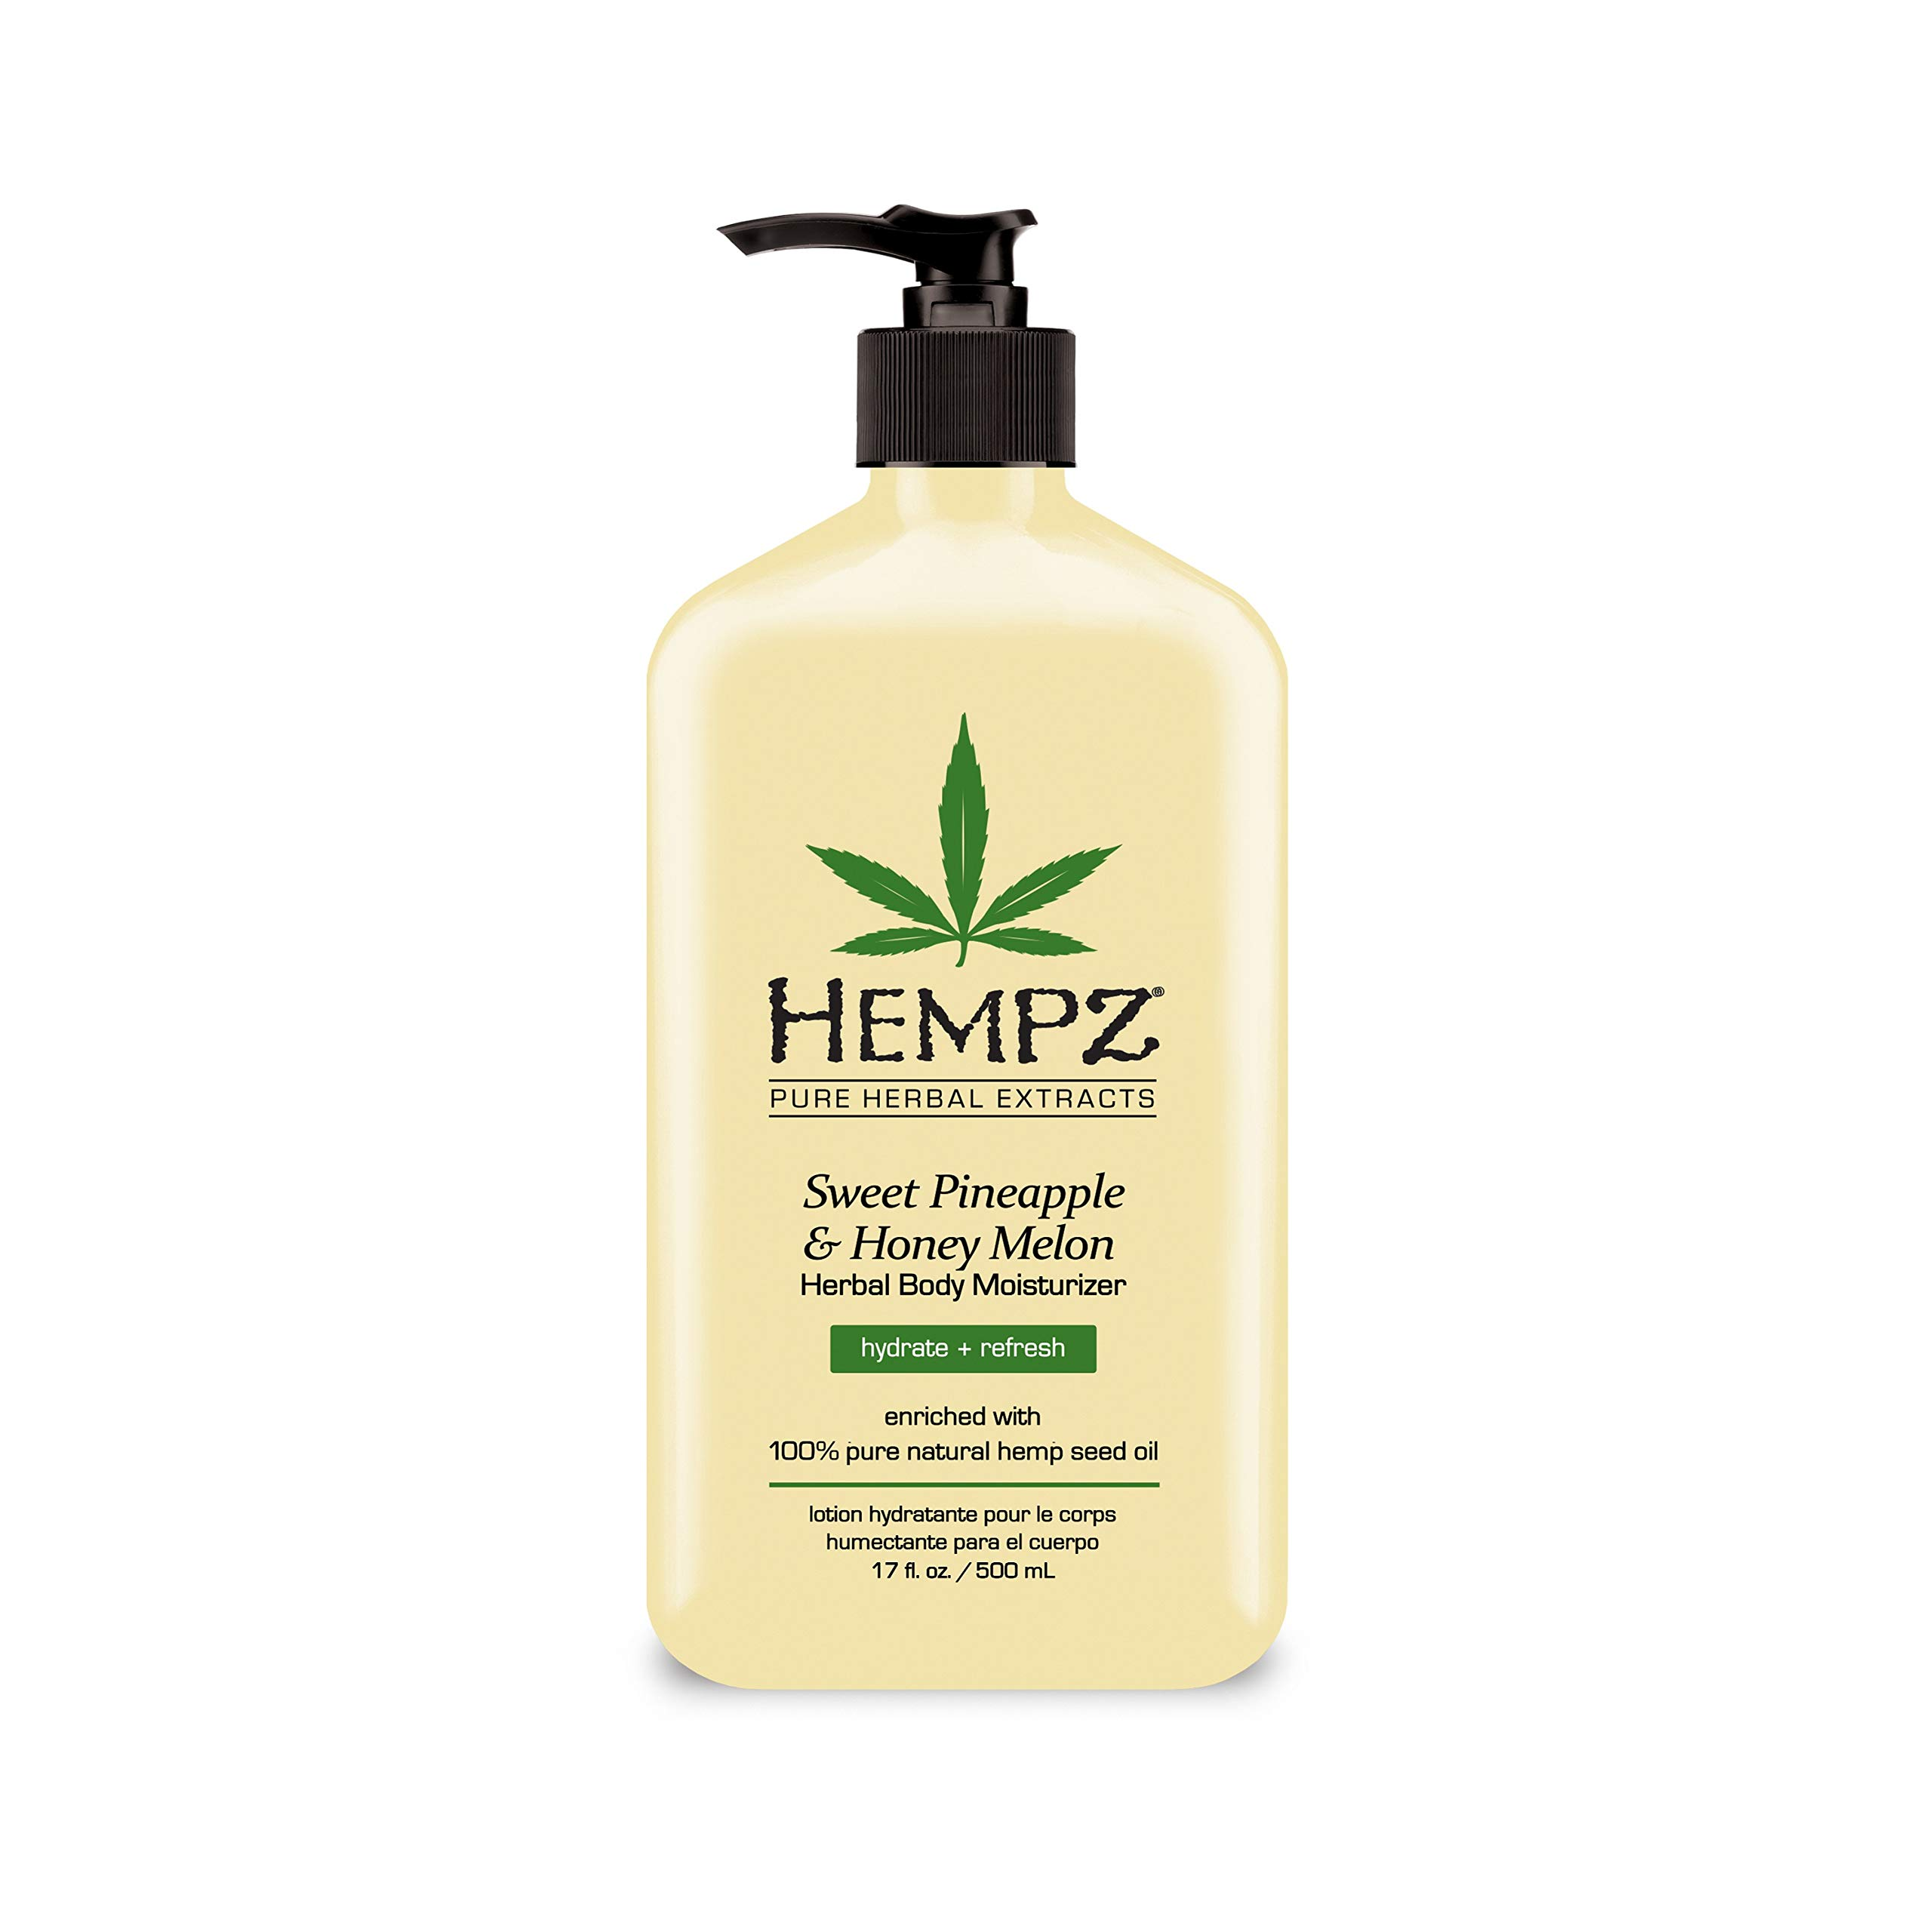 Hempz Natural Herbal Body Moisturizer: Sweet Pineapple & Honey Melon Skin Lotion, 17 oz by Hempz